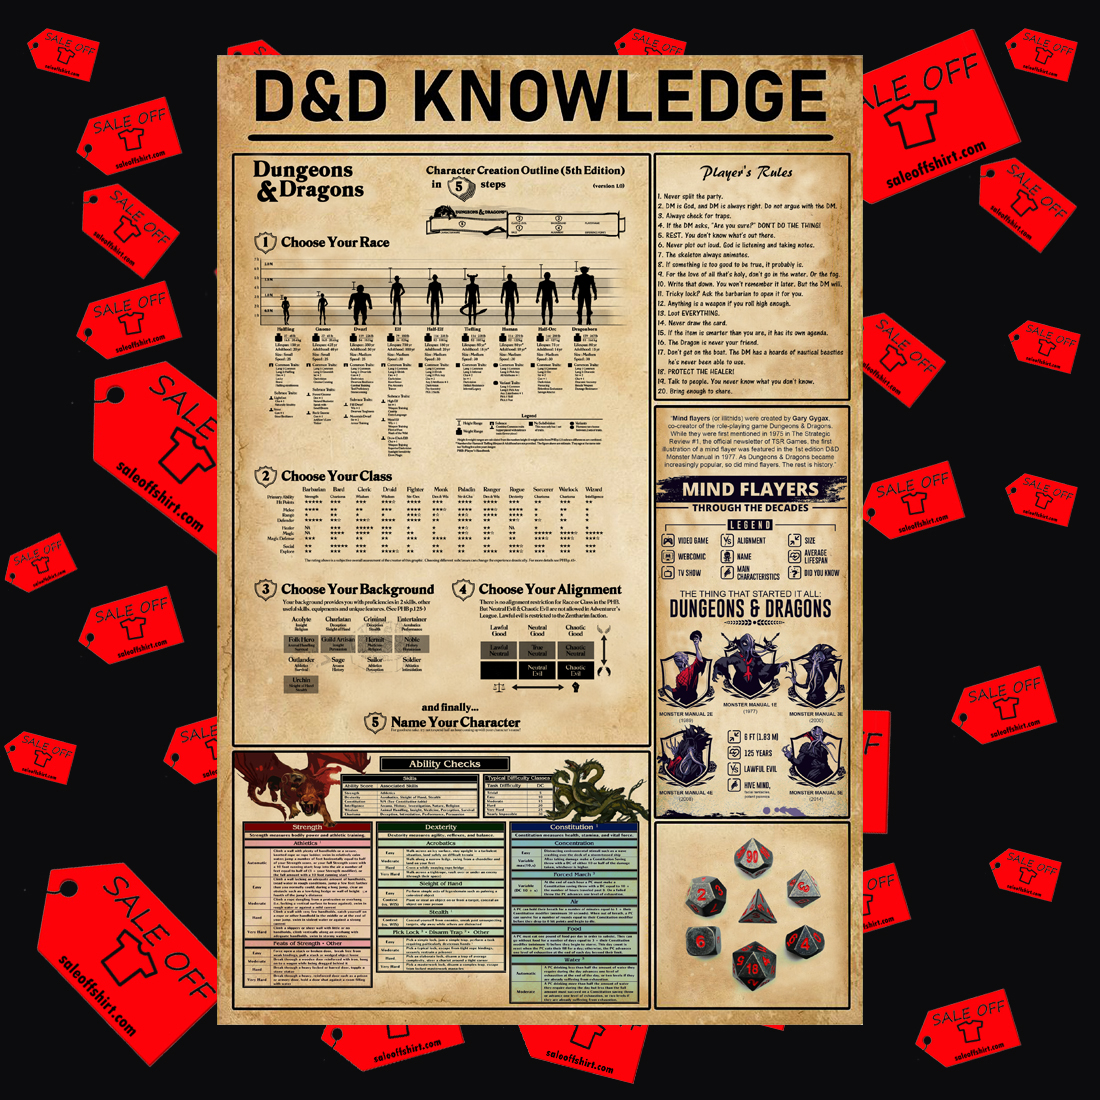 D&D Dungeons & Dragons Knowledge Poster